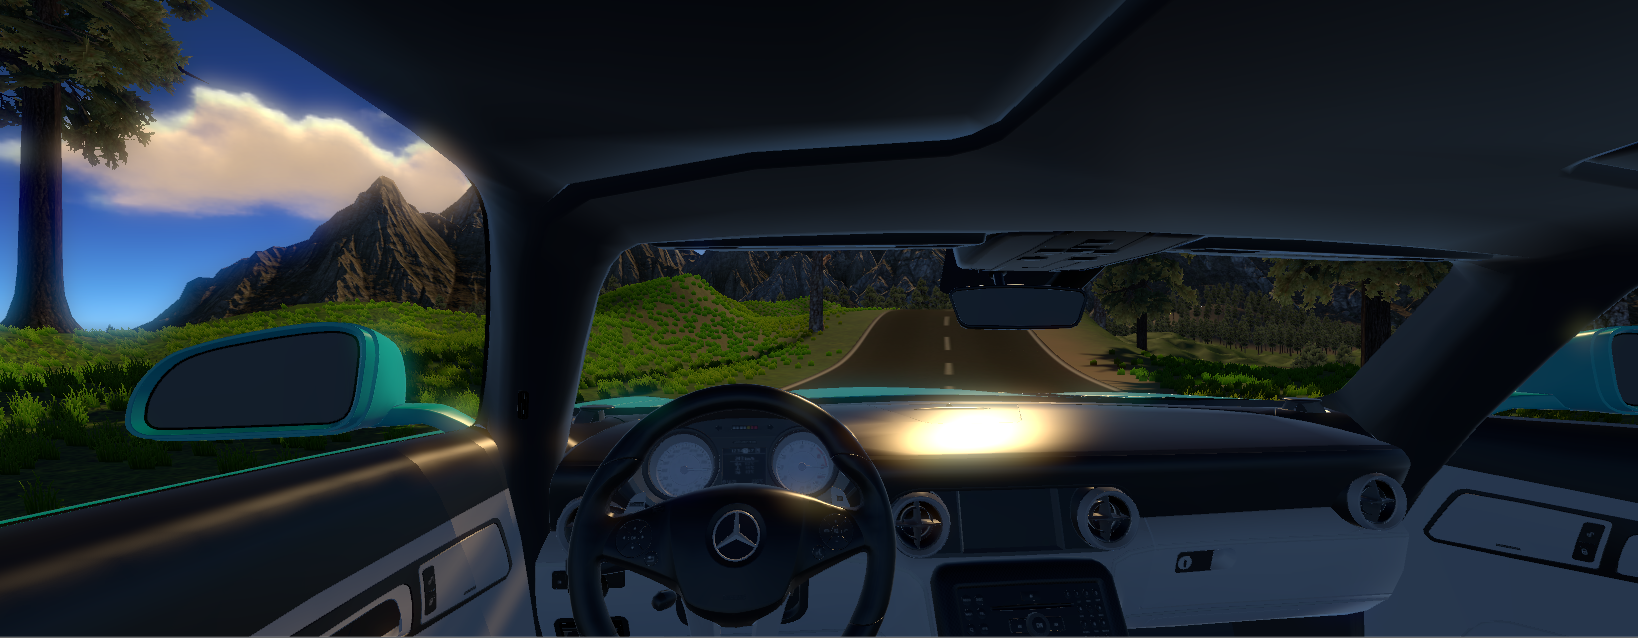 Car Simulator Games >> Pc Wip Freedrive An Open World Driving Simulator